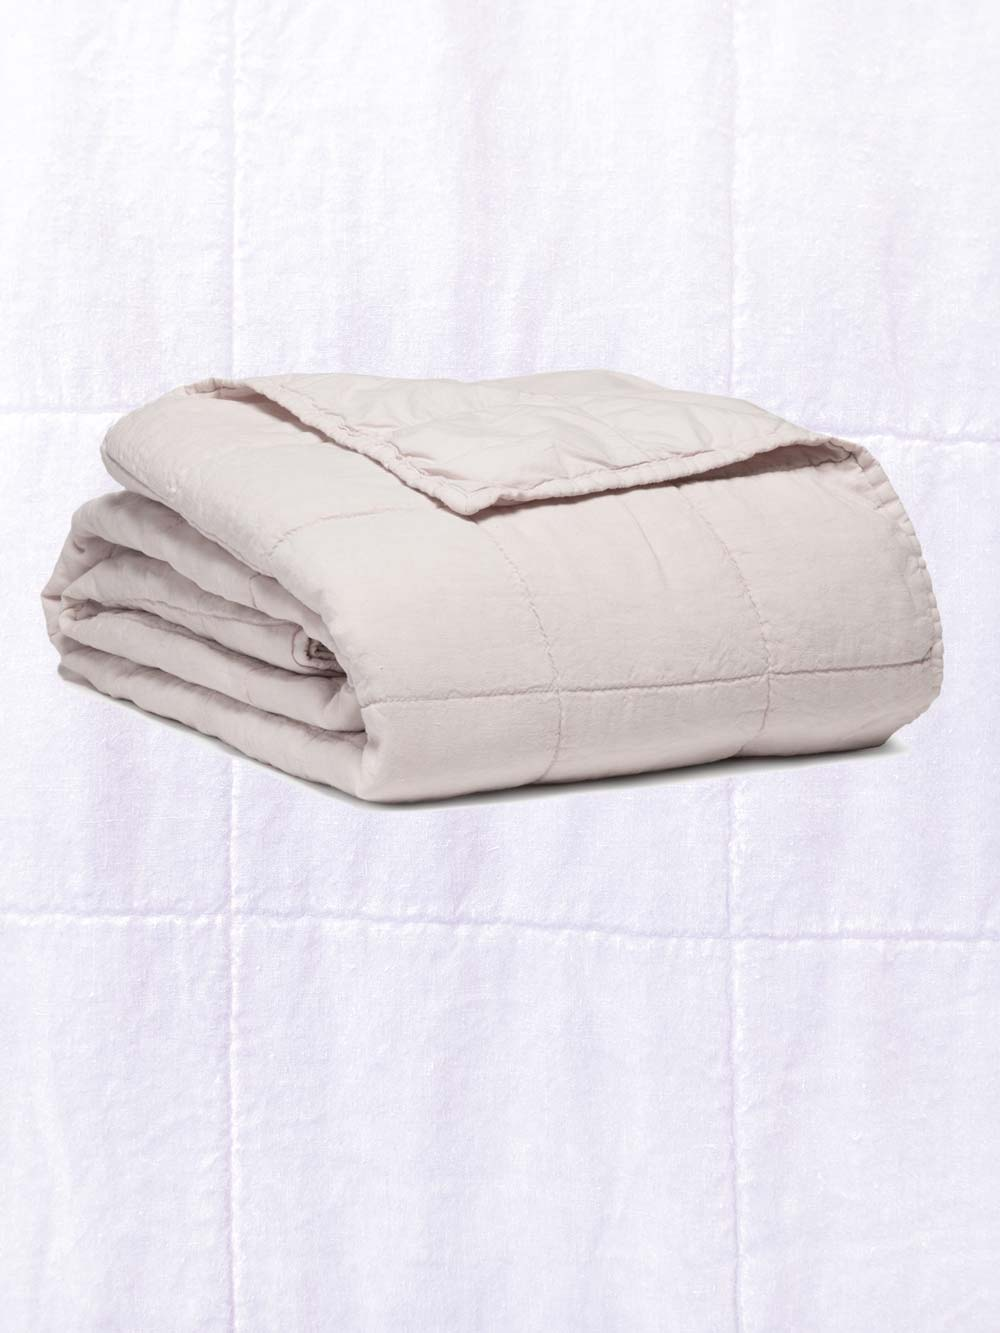 Quilted Covers - SELECT FROM 7 DIFFERENT COLORS